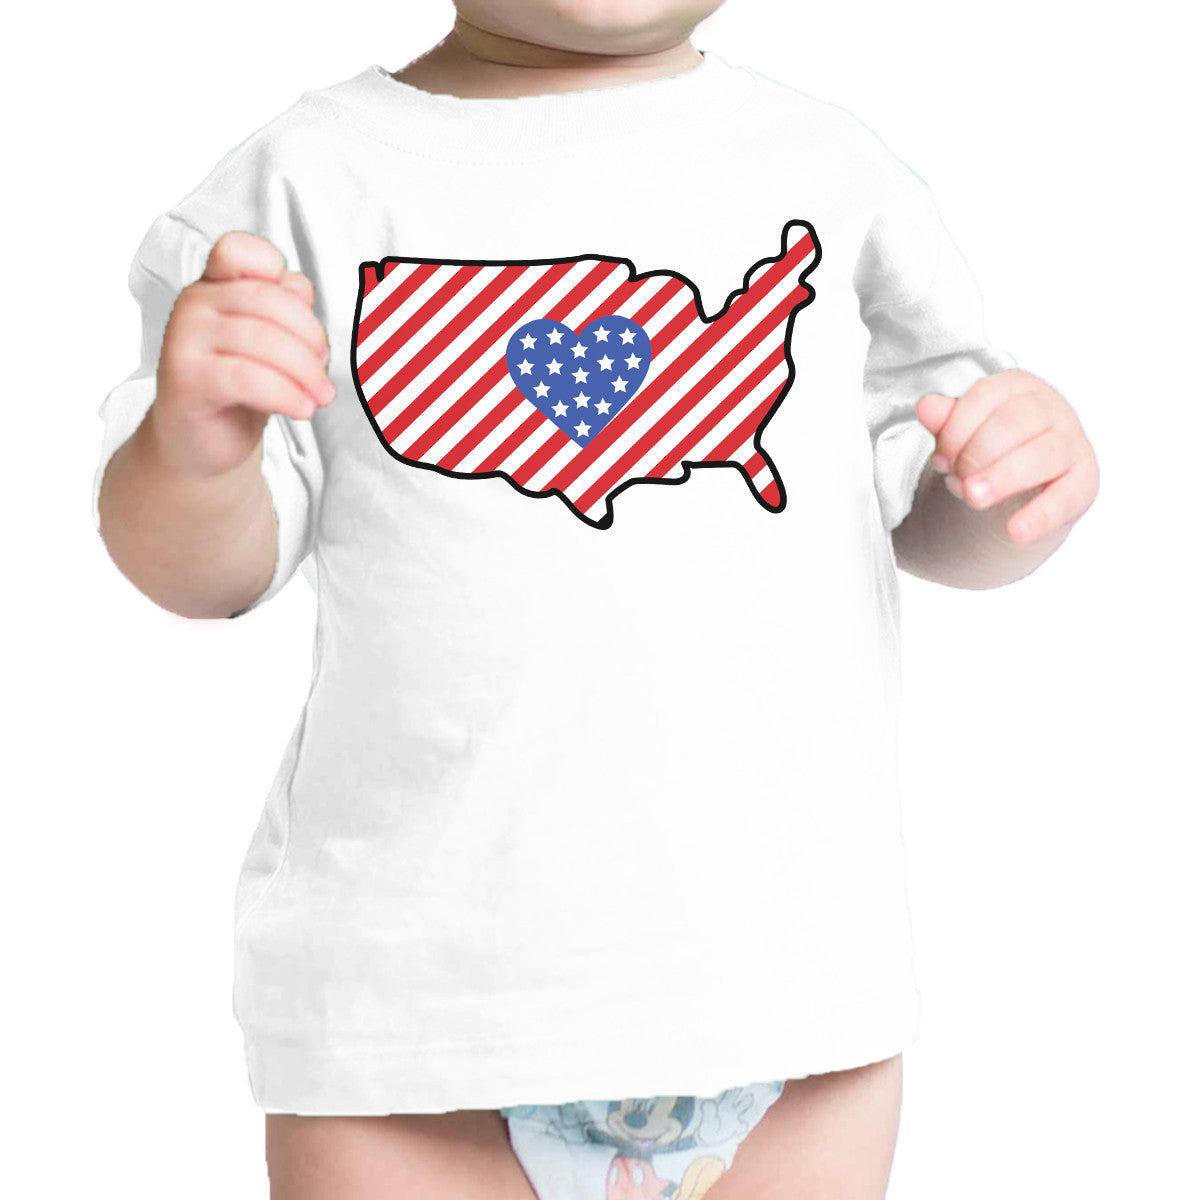 Cute Usa Map.Usa Map Cute 4th Of July Decorative Cute Baby T Shirt New Mom Gifts